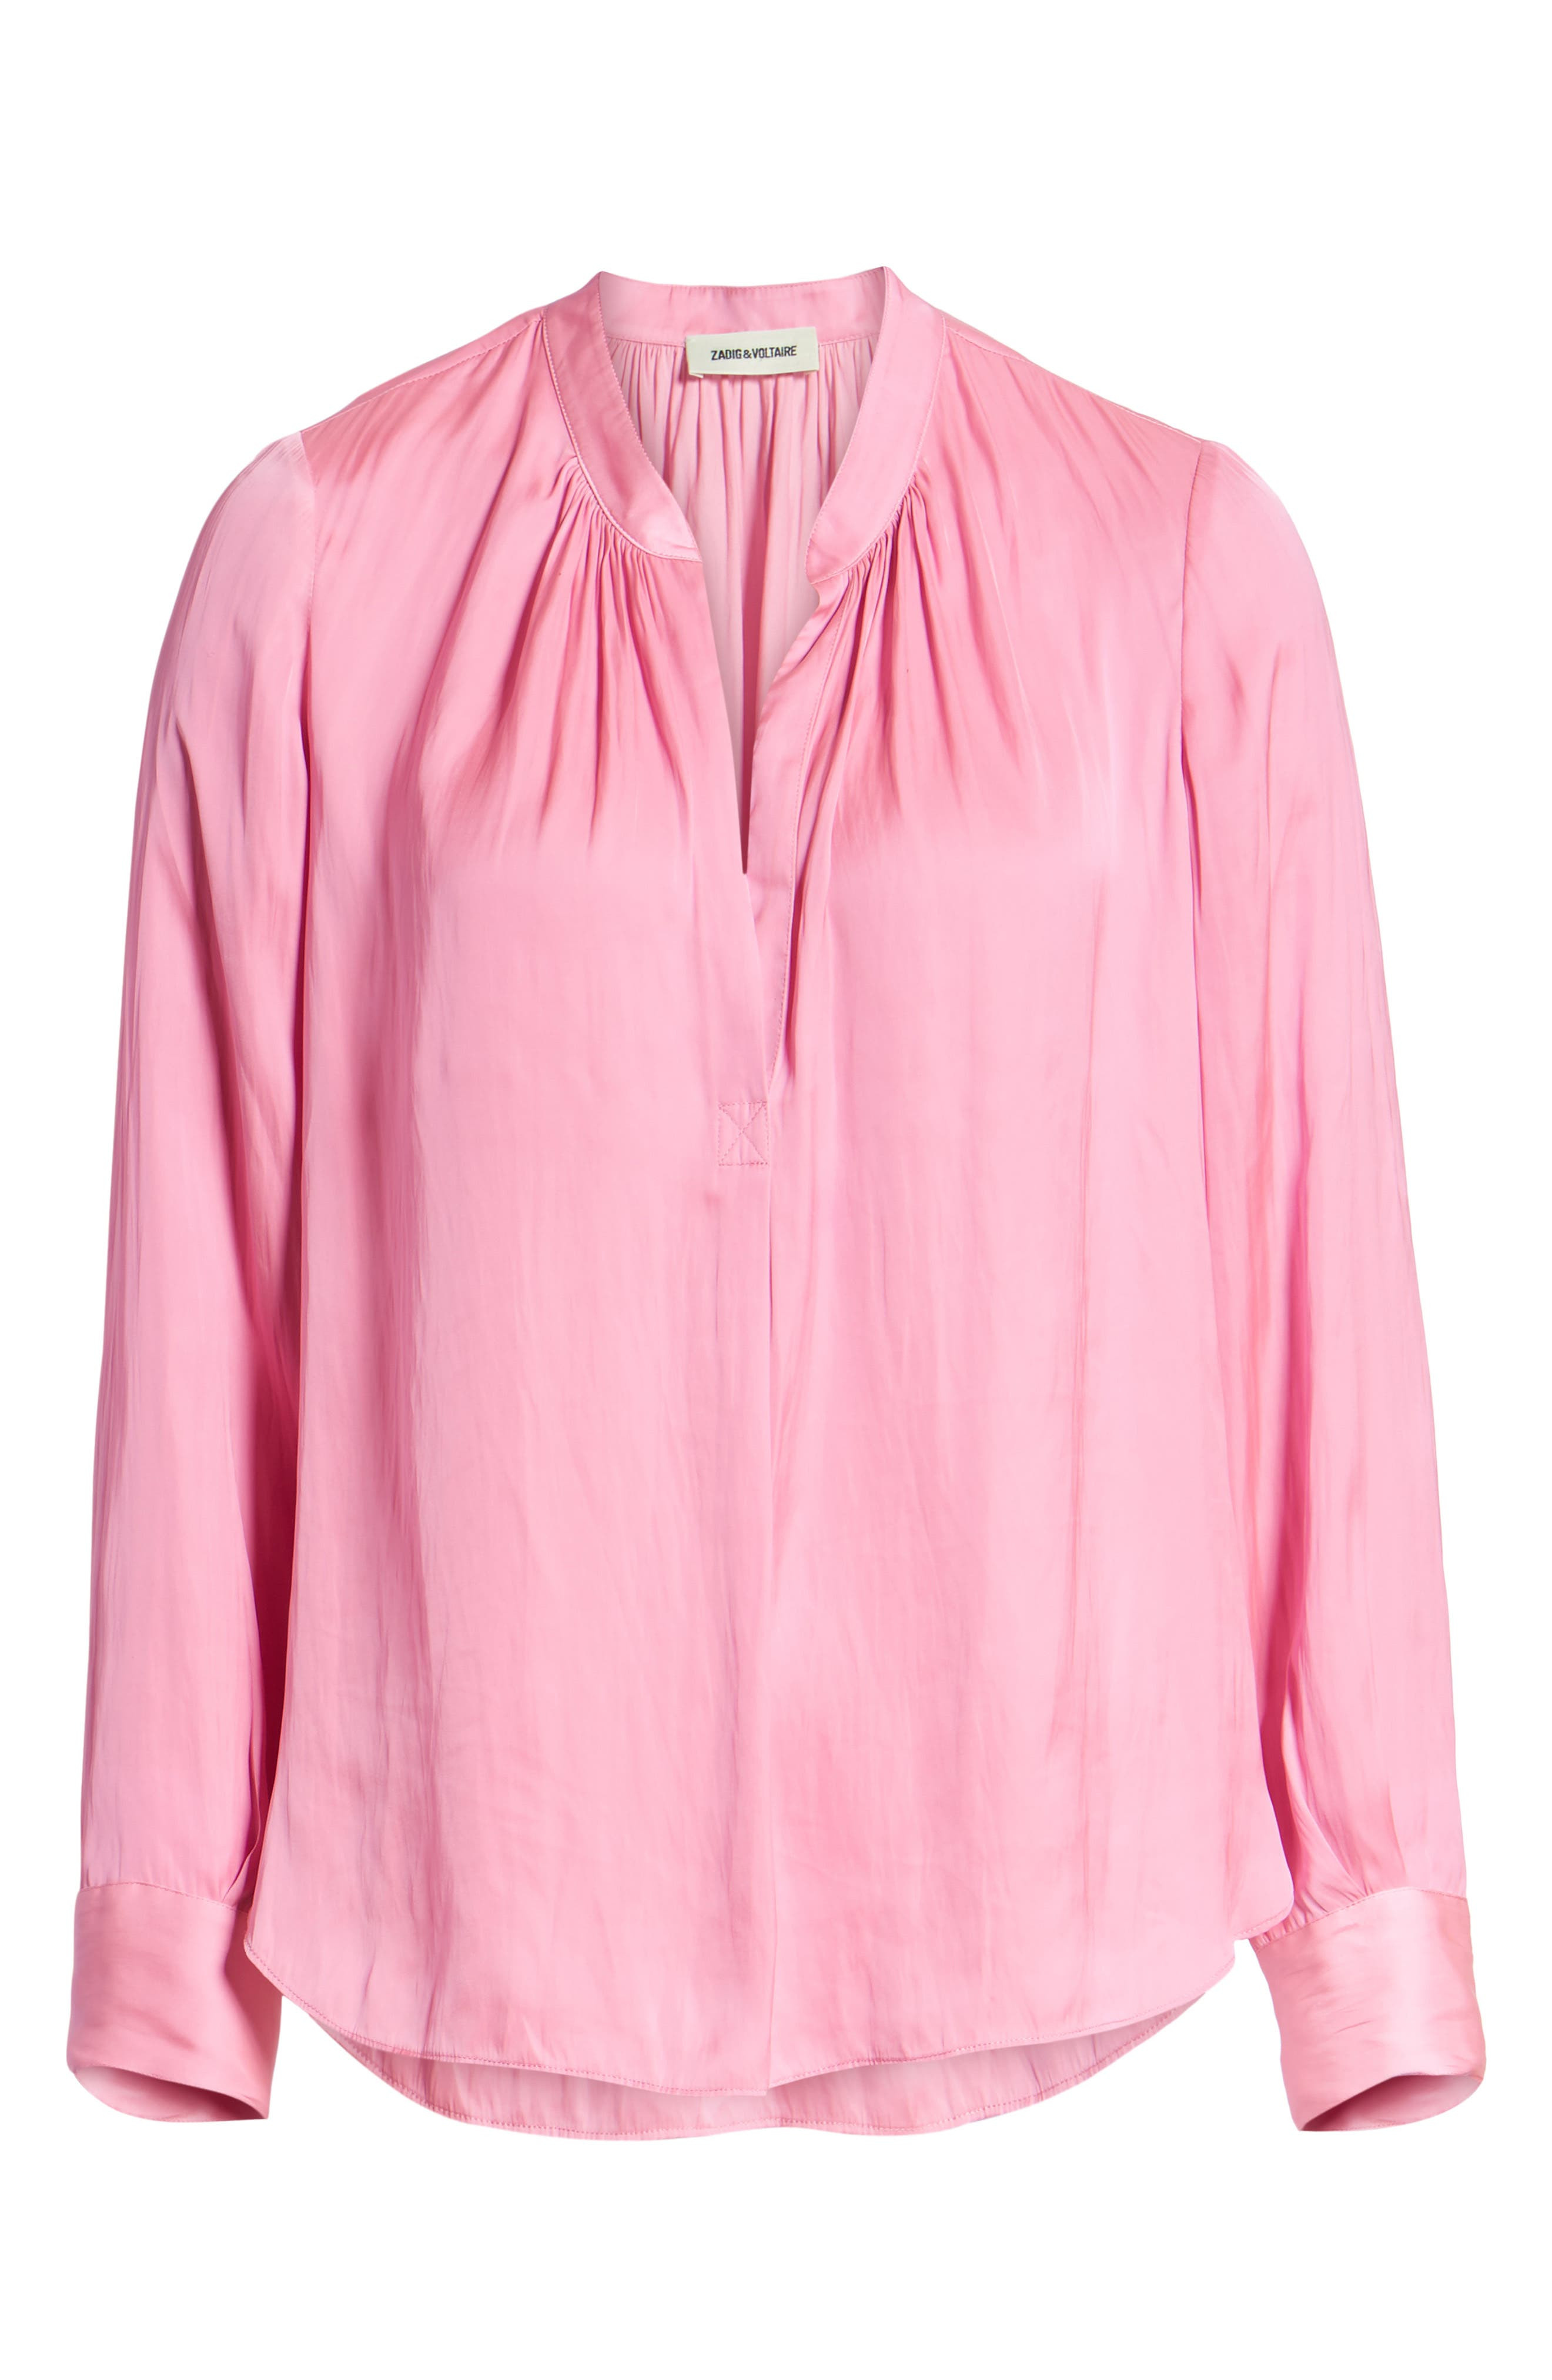 Zadig & Volaire Tink Blouse,                             Alternate thumbnail 6, color,                             688